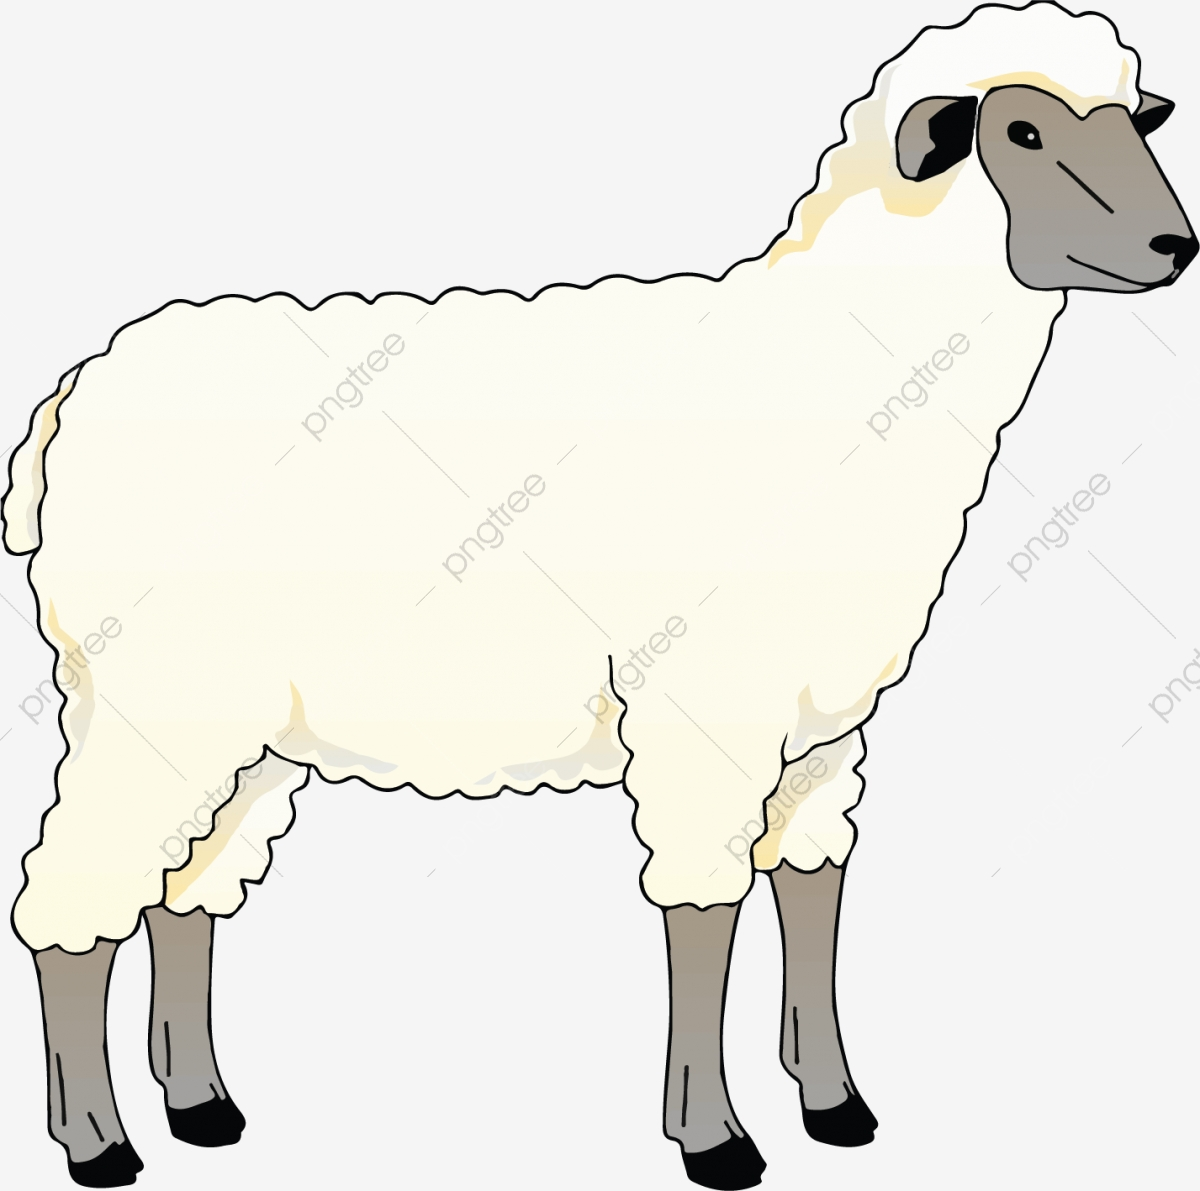 Lamb clipart vector. Sheep cartoon png and